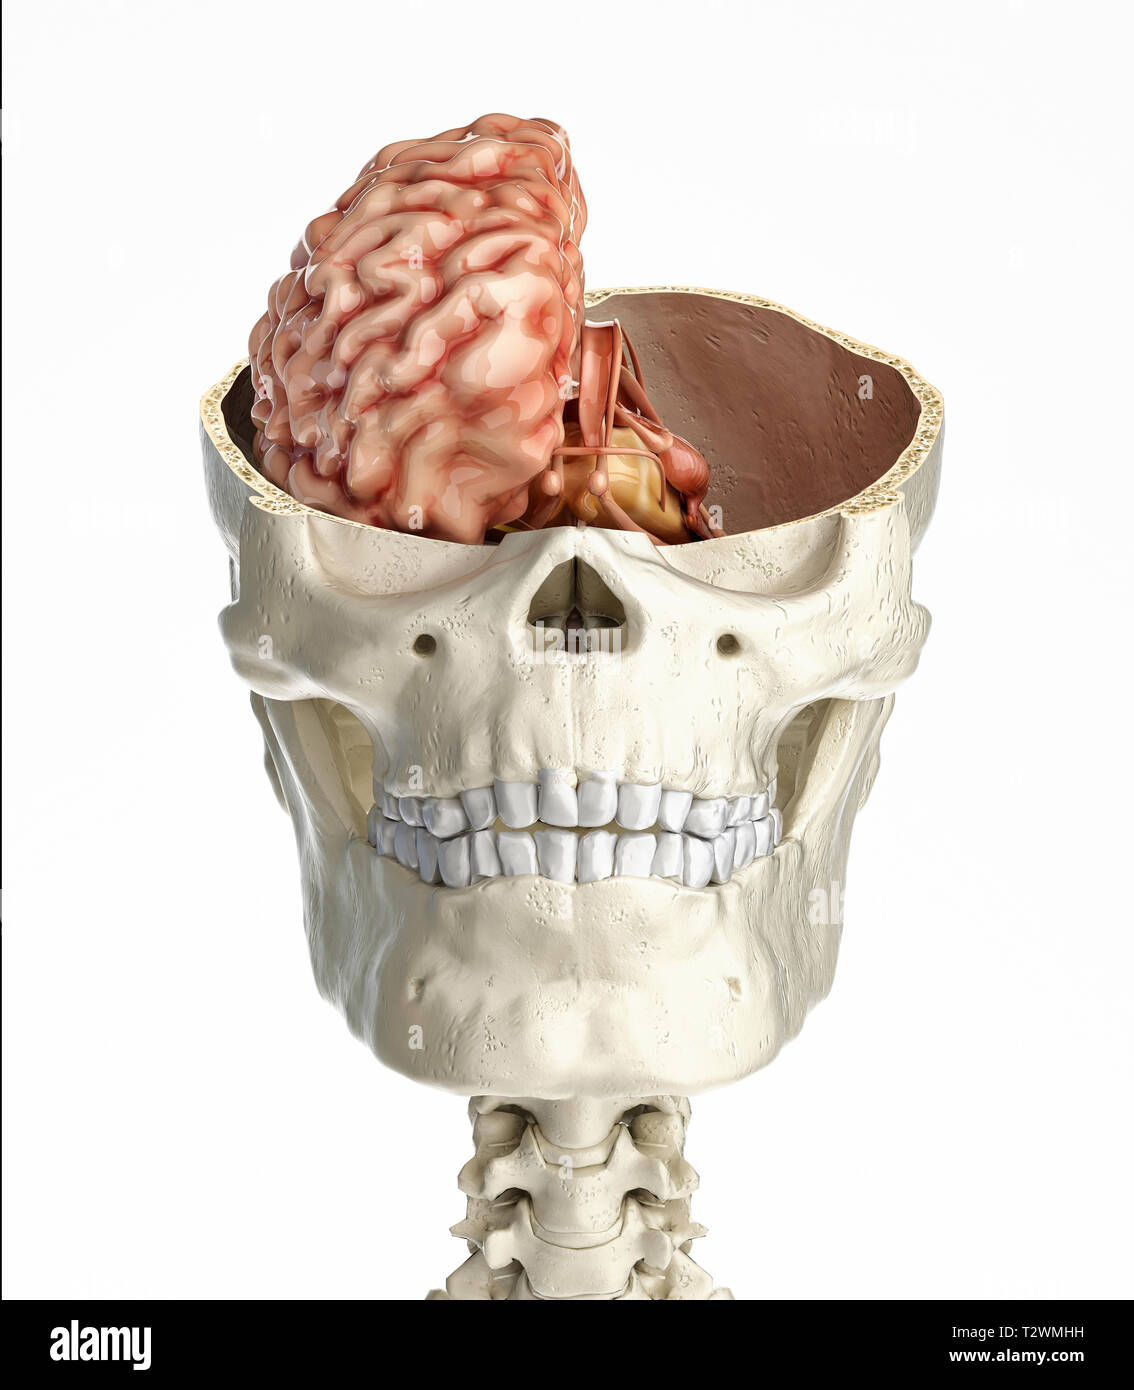 Human skull transversal cross section with brain. Front view on white background. - Stock Image